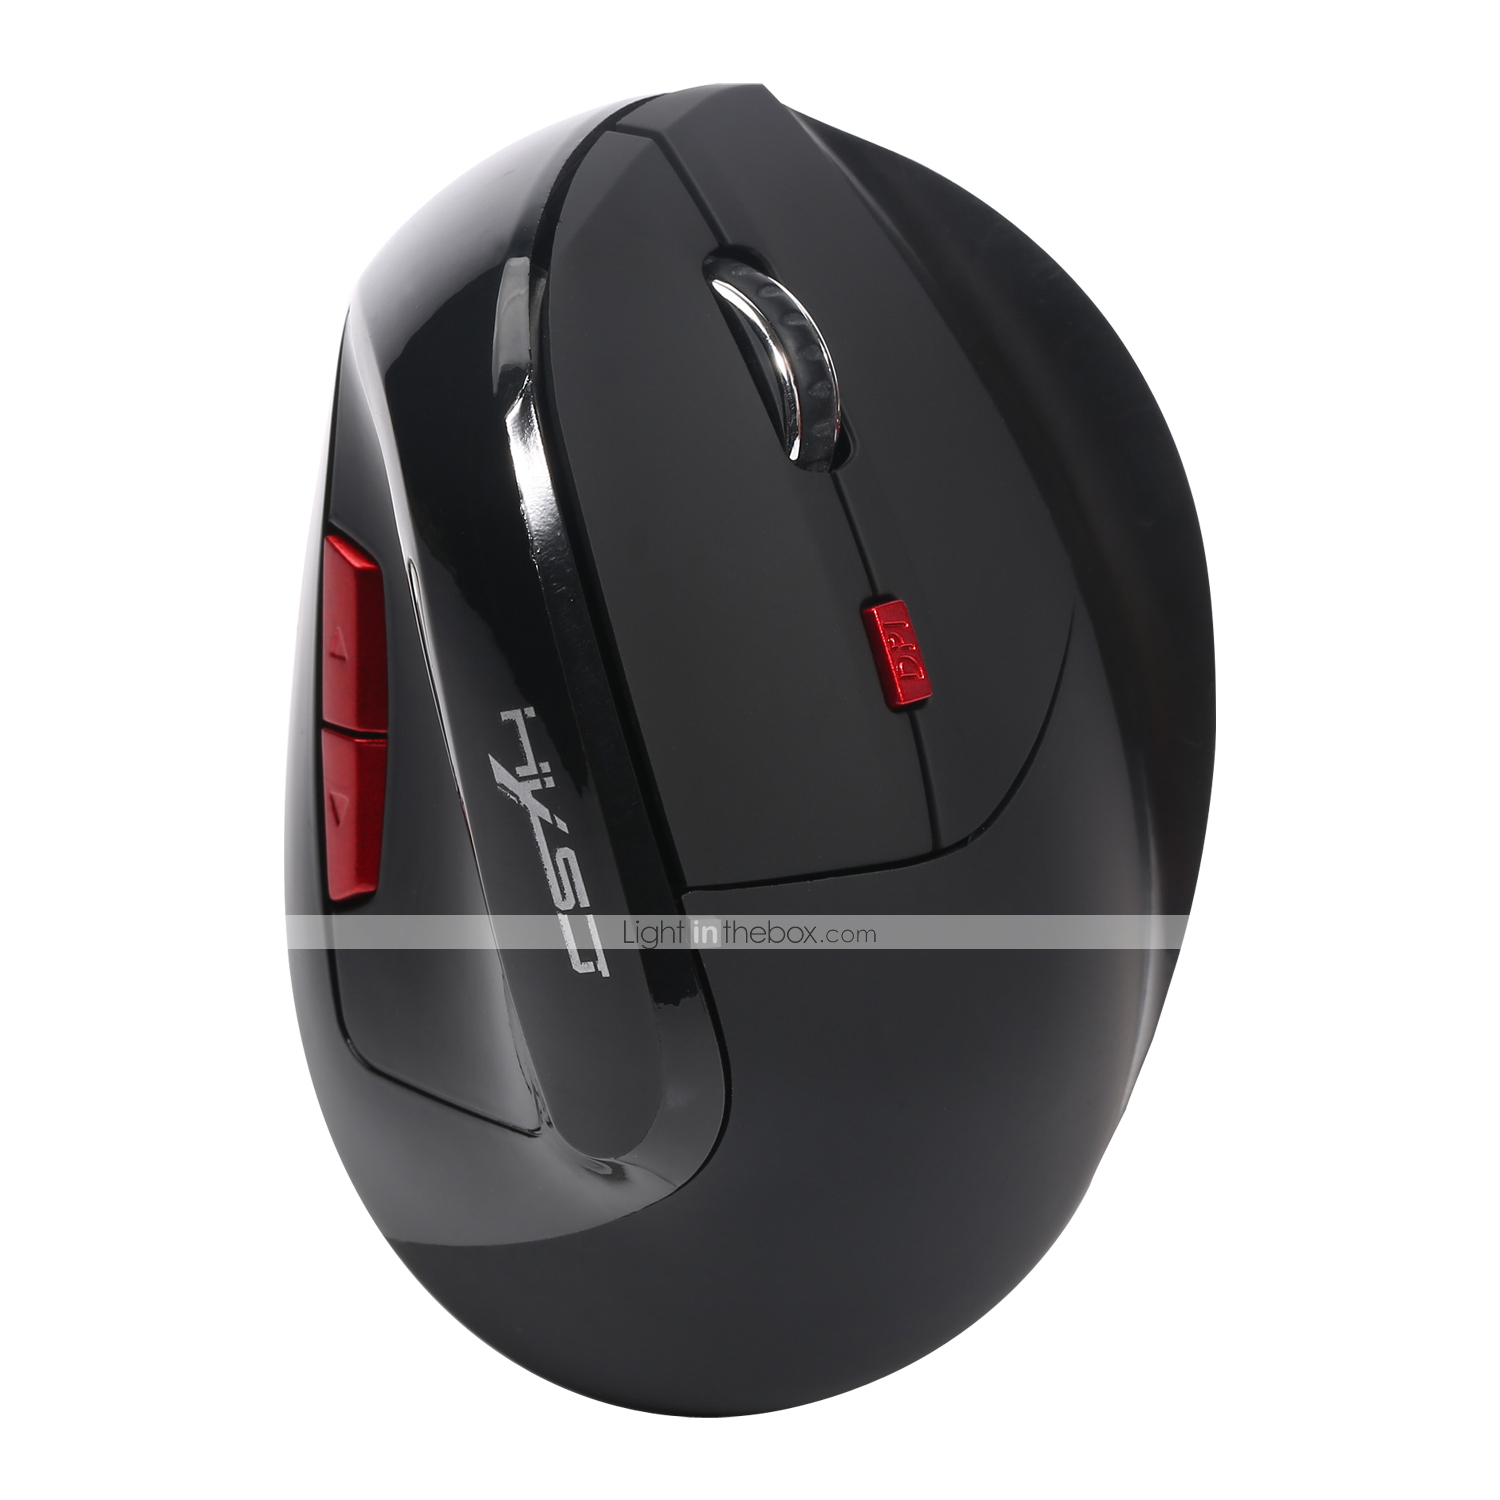 HJSS Wireless Mouse 2.4GHz 1200DPI Silent Rechargeable Wireless Mice PC Laptop Computer Gift Mouse with 3 Buttons Creative Office Shoe Shape Mouse Black